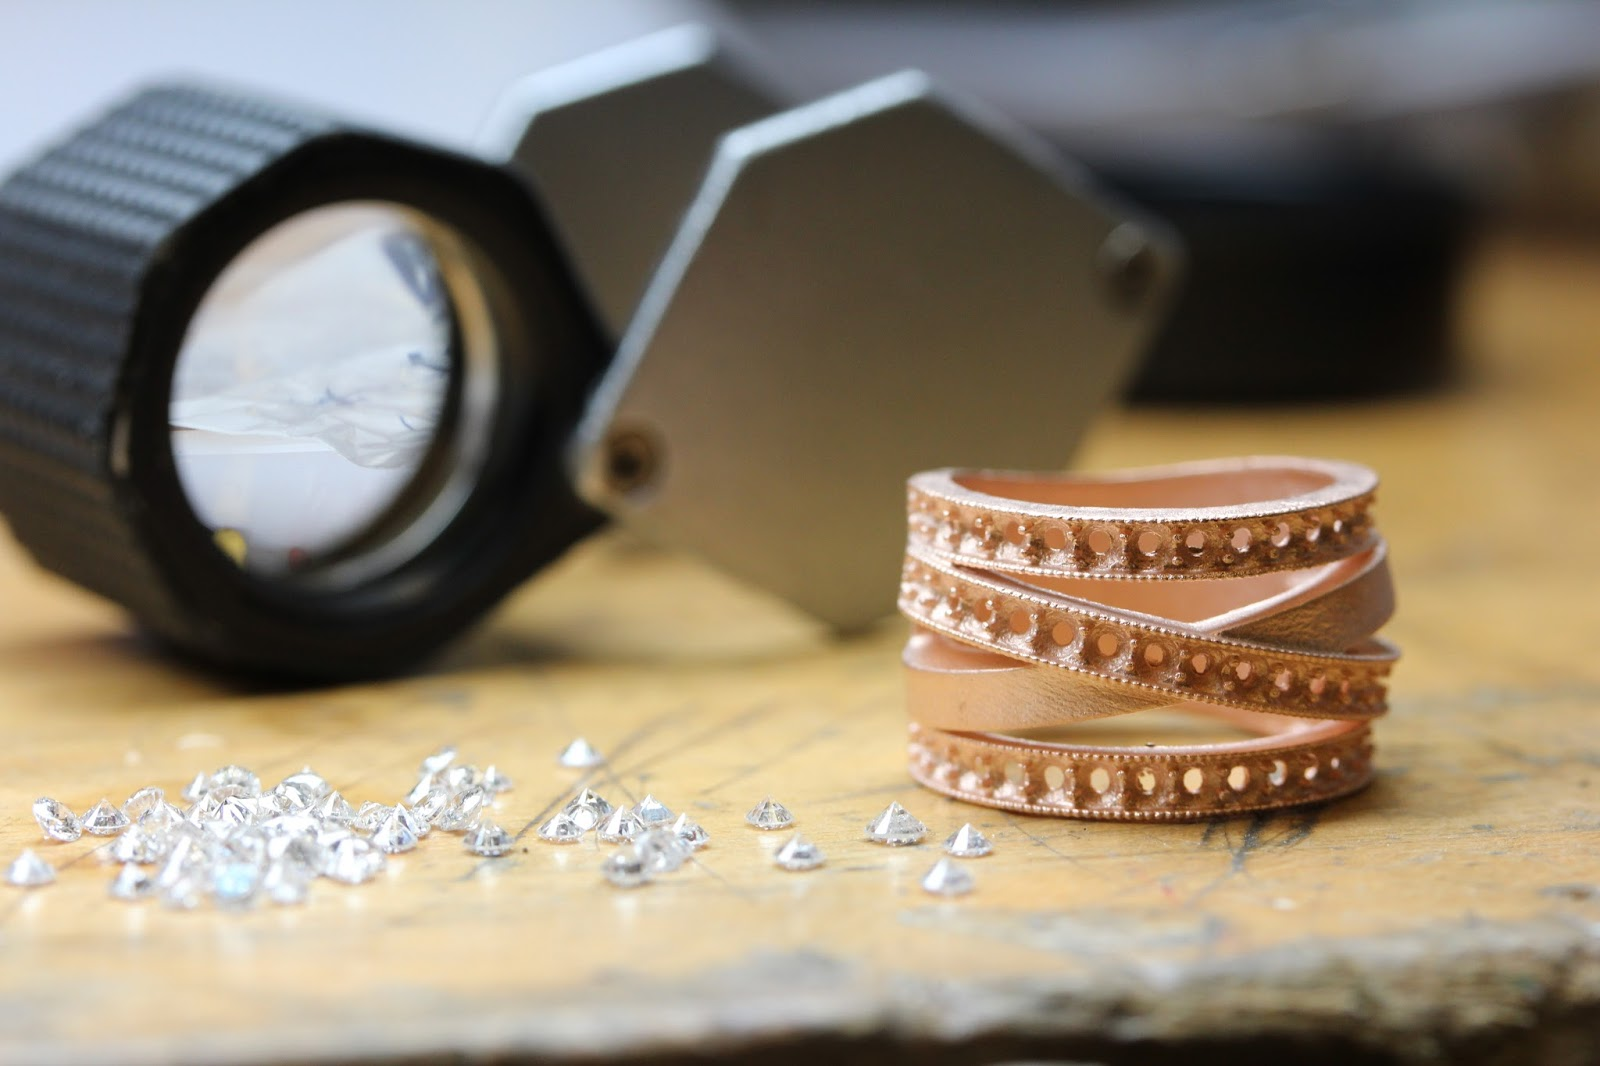 Rose Gold Casting, Raw Casting, OKG Jewelry, Custom Design Jeweler, Criss Cross Diamond Ring